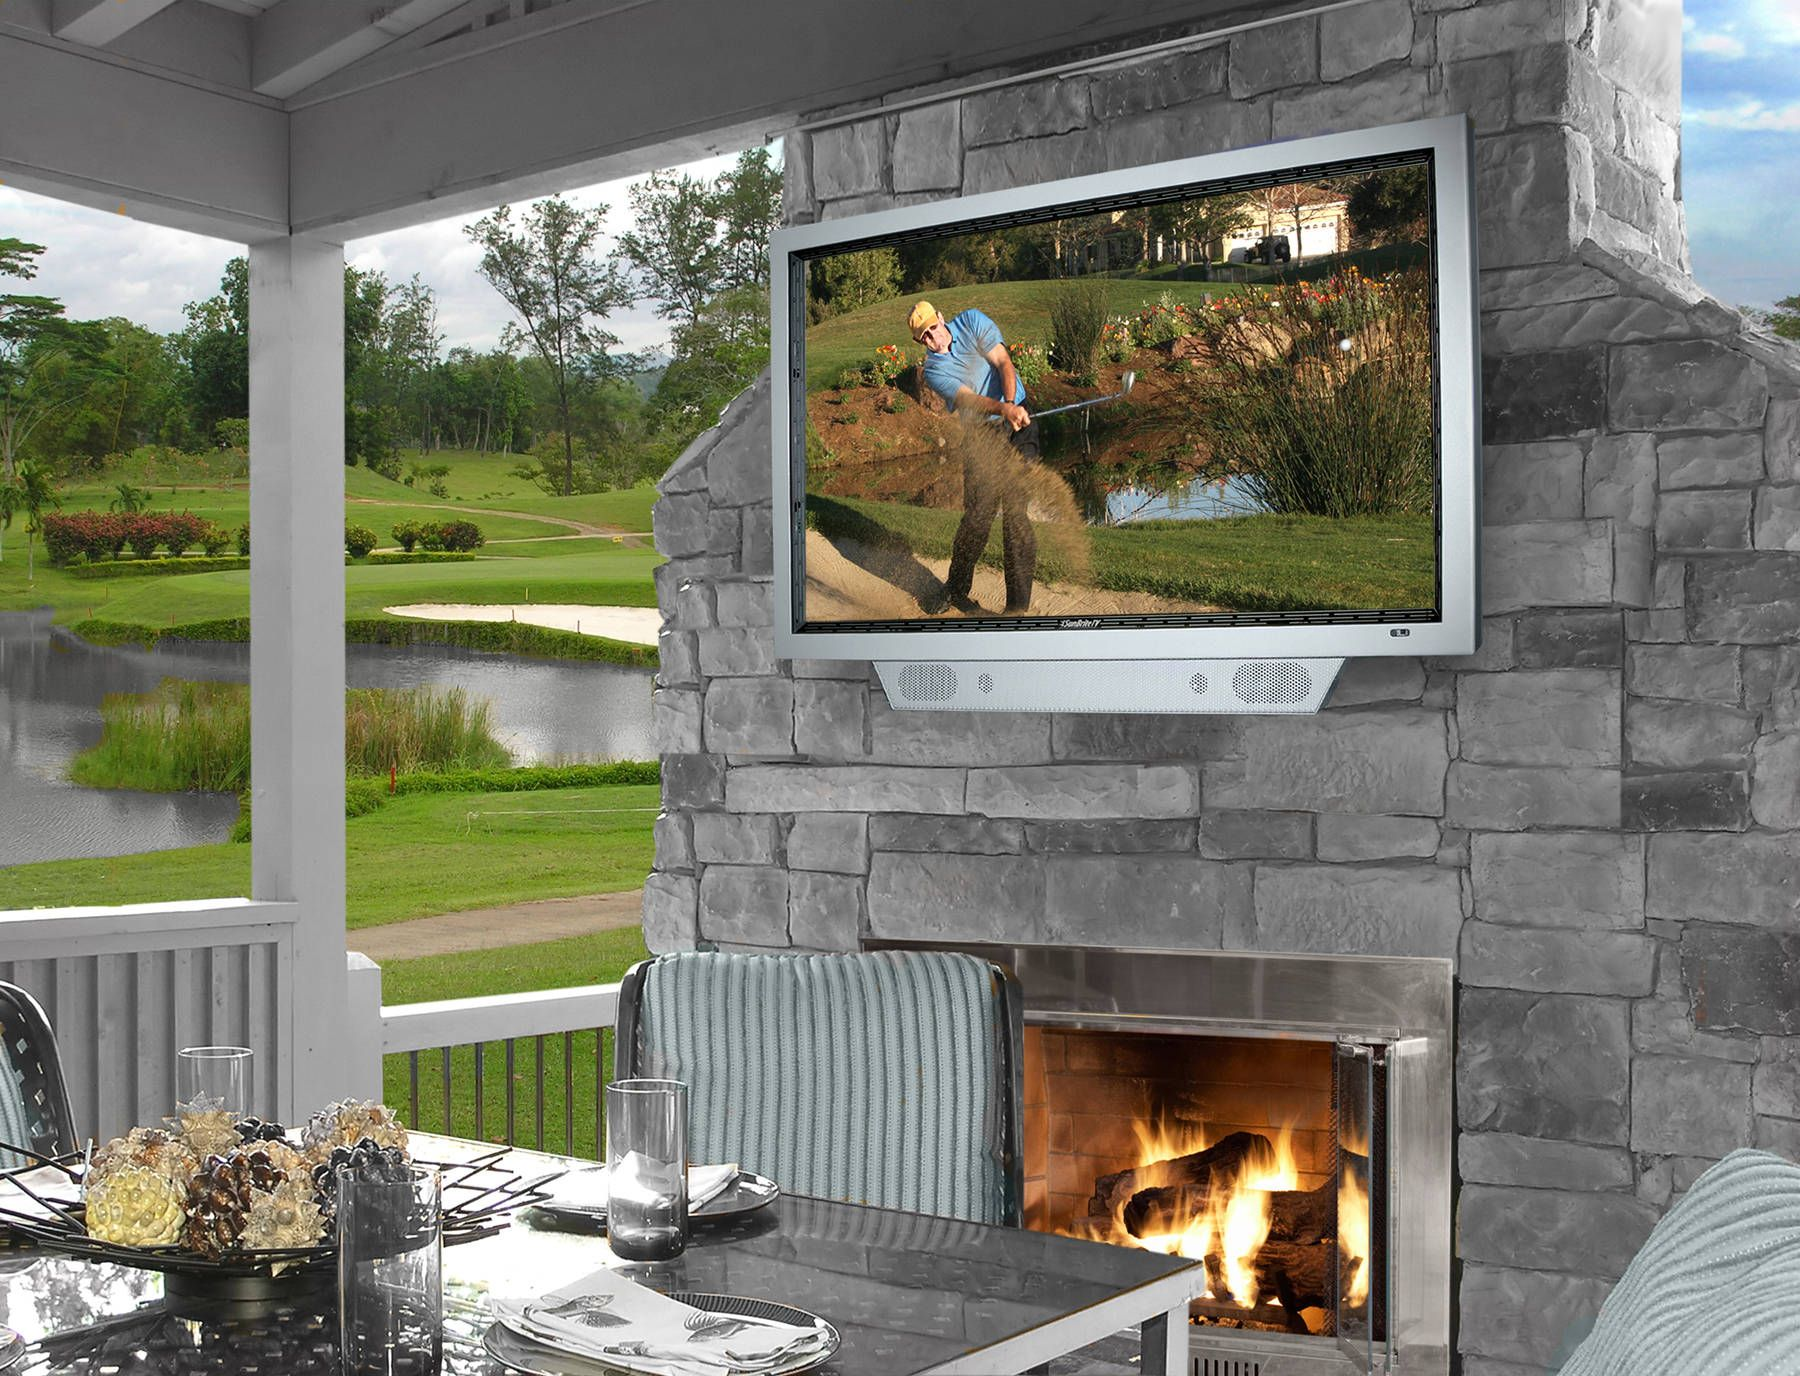 Outdoor Fireplaces - Tv Of The Week Sunbritetv Model 4610Hd